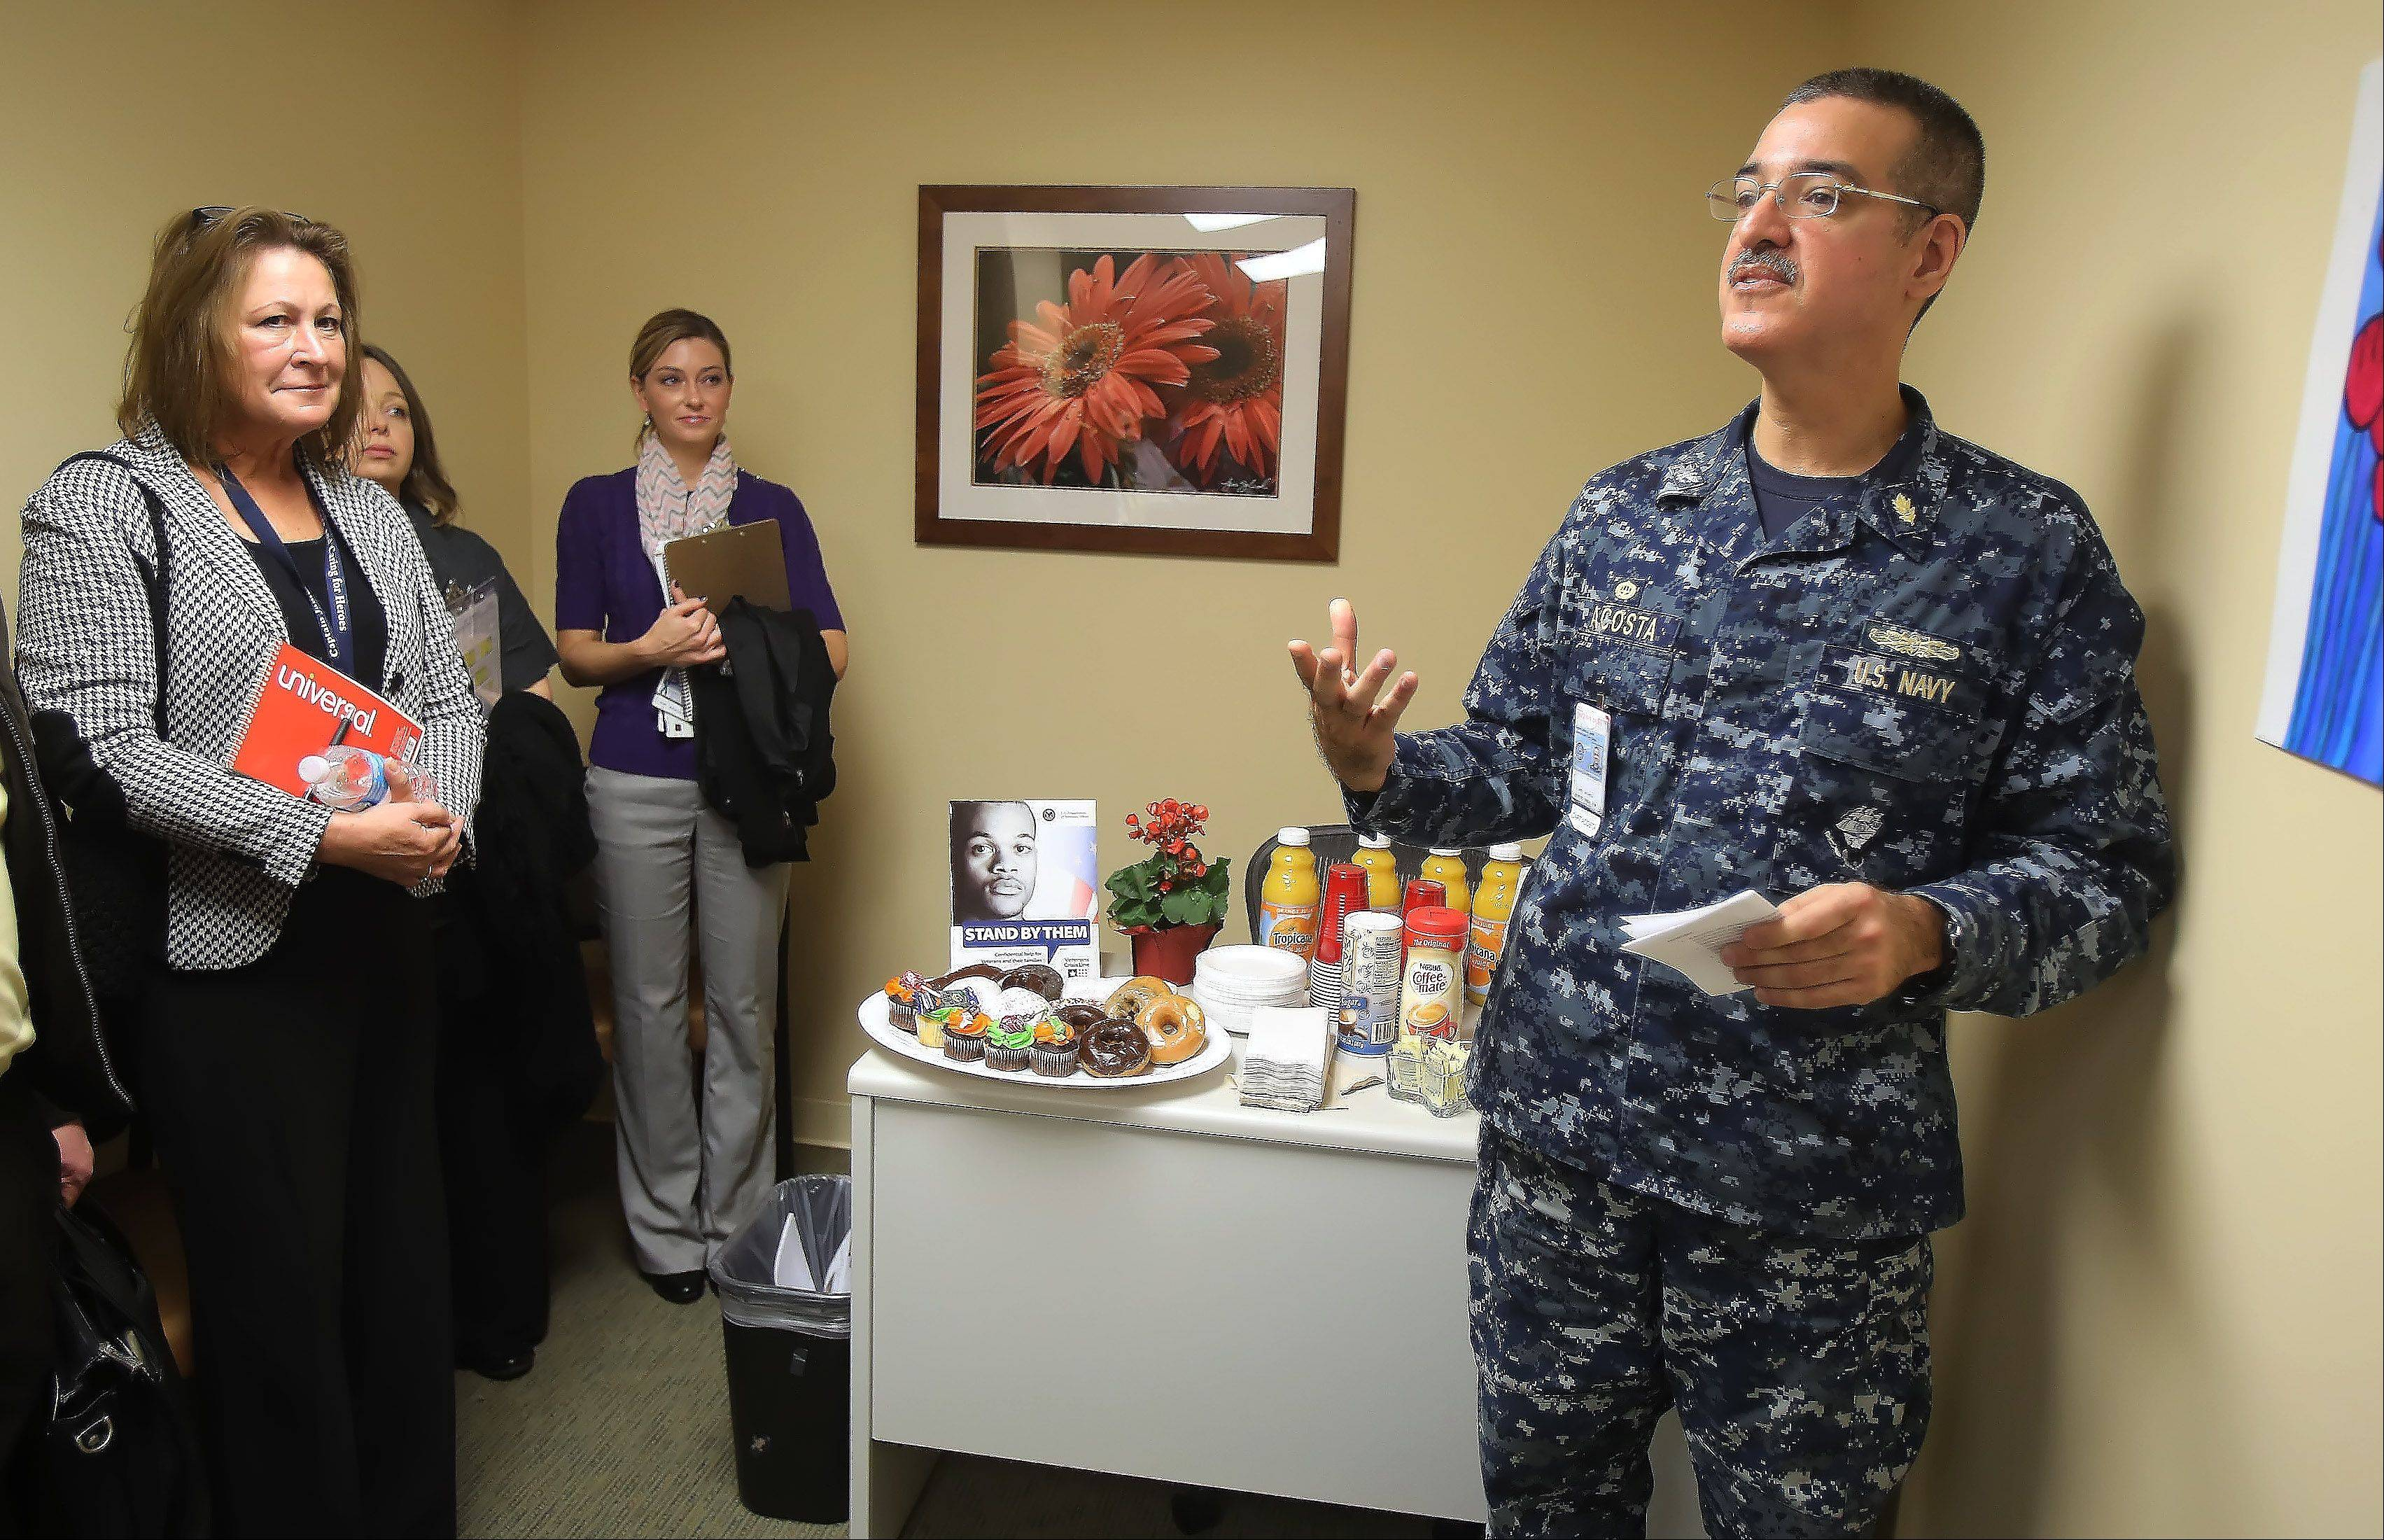 U.S. Navy Capt. Jose Acosta talks about veterans' needs Monday at the Capt. James A. Lovell Federal Health Care Center's new walk-in office for homeless veterans. Acosta is the Lovell Center's deputy director.